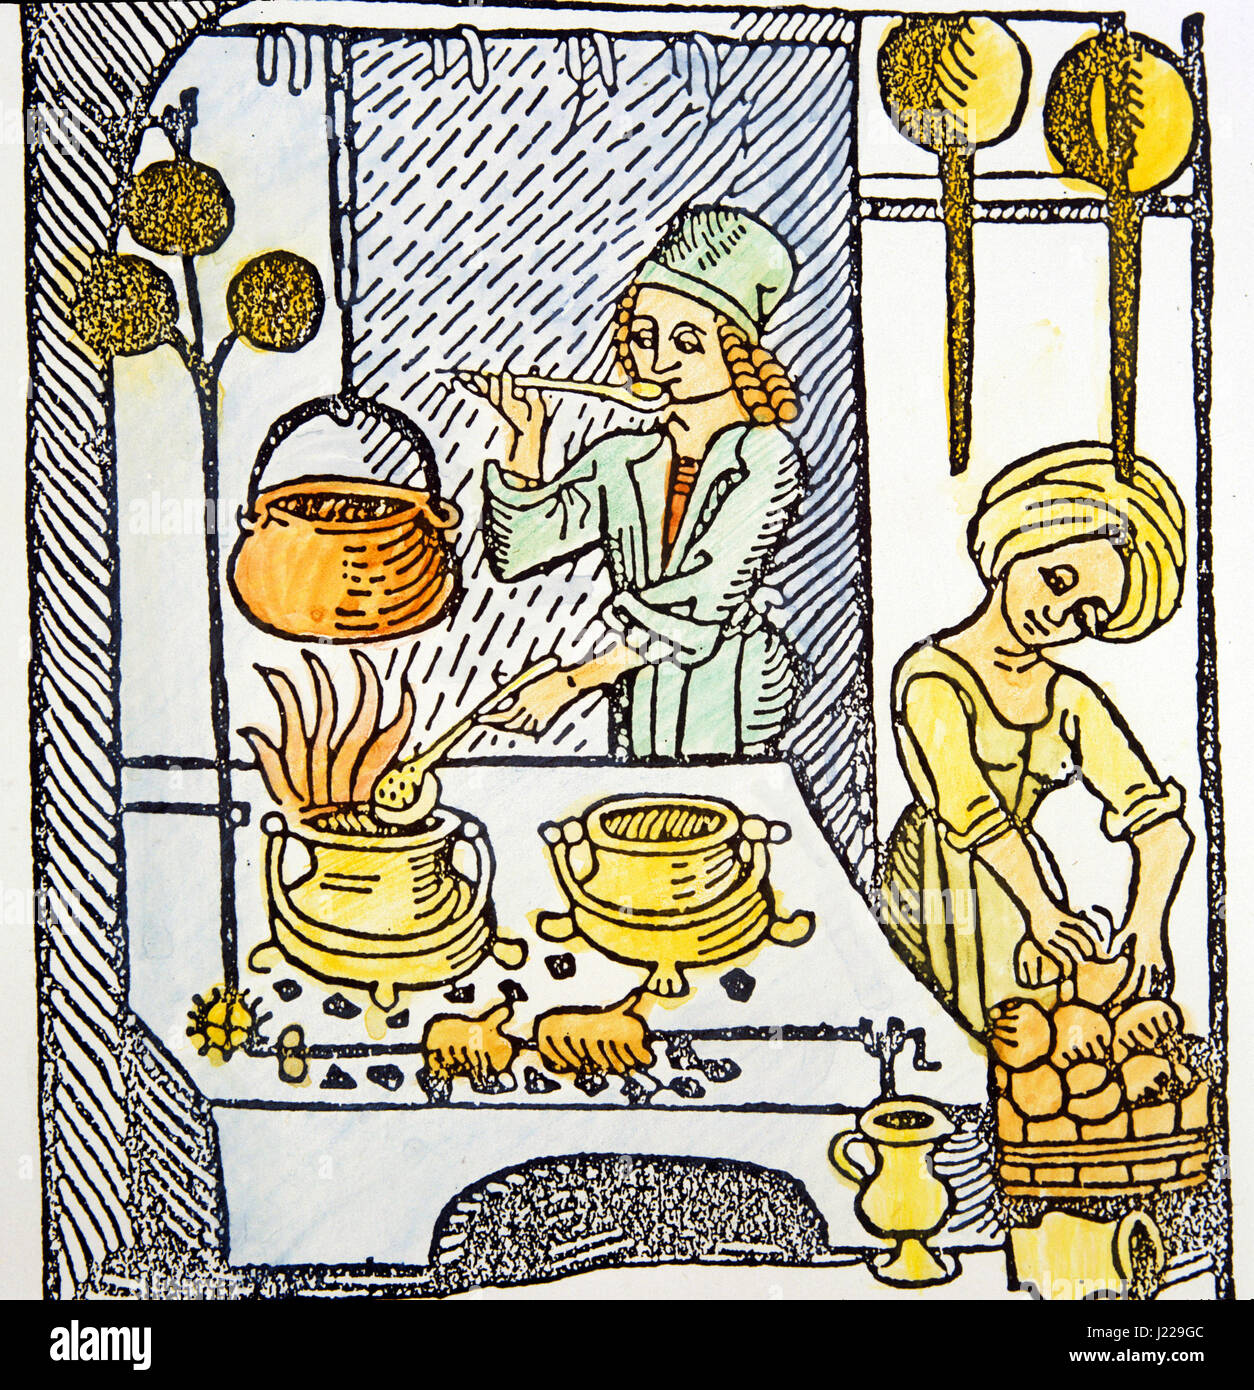 Image No. M15EVA230 15th century engraving. Kitchen scene. Servants cooking, boiling on stove and grilling. - Stock Image